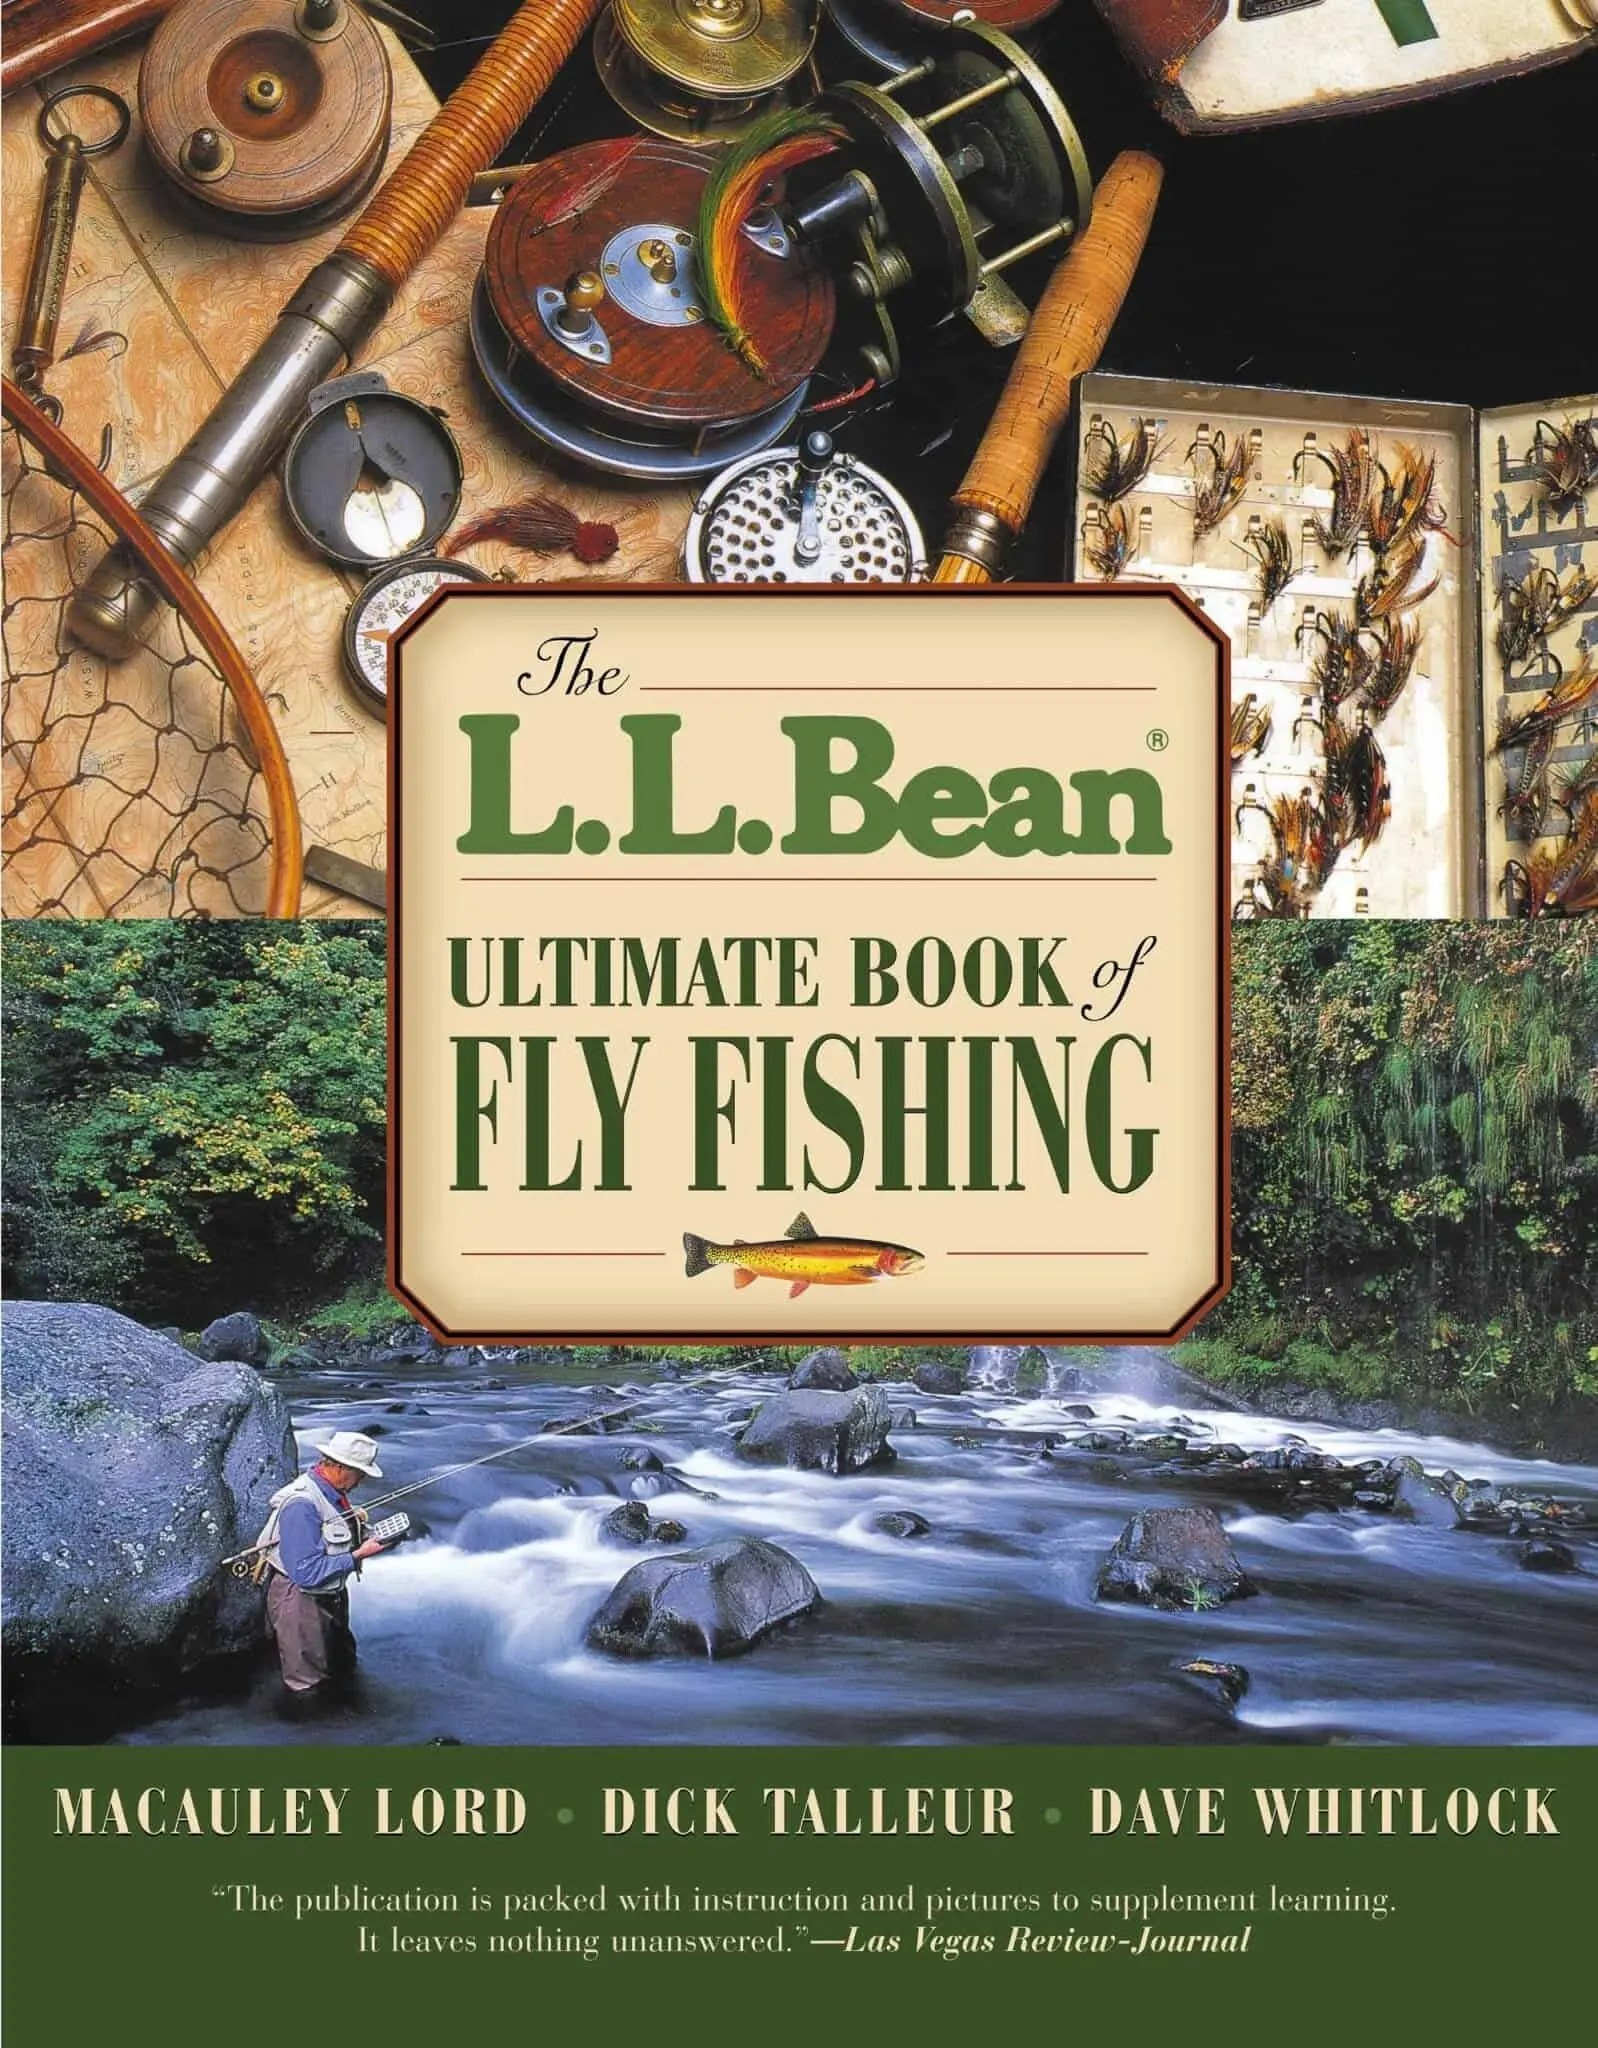 L.L. Bean Ultimate Book of Fly Fishing